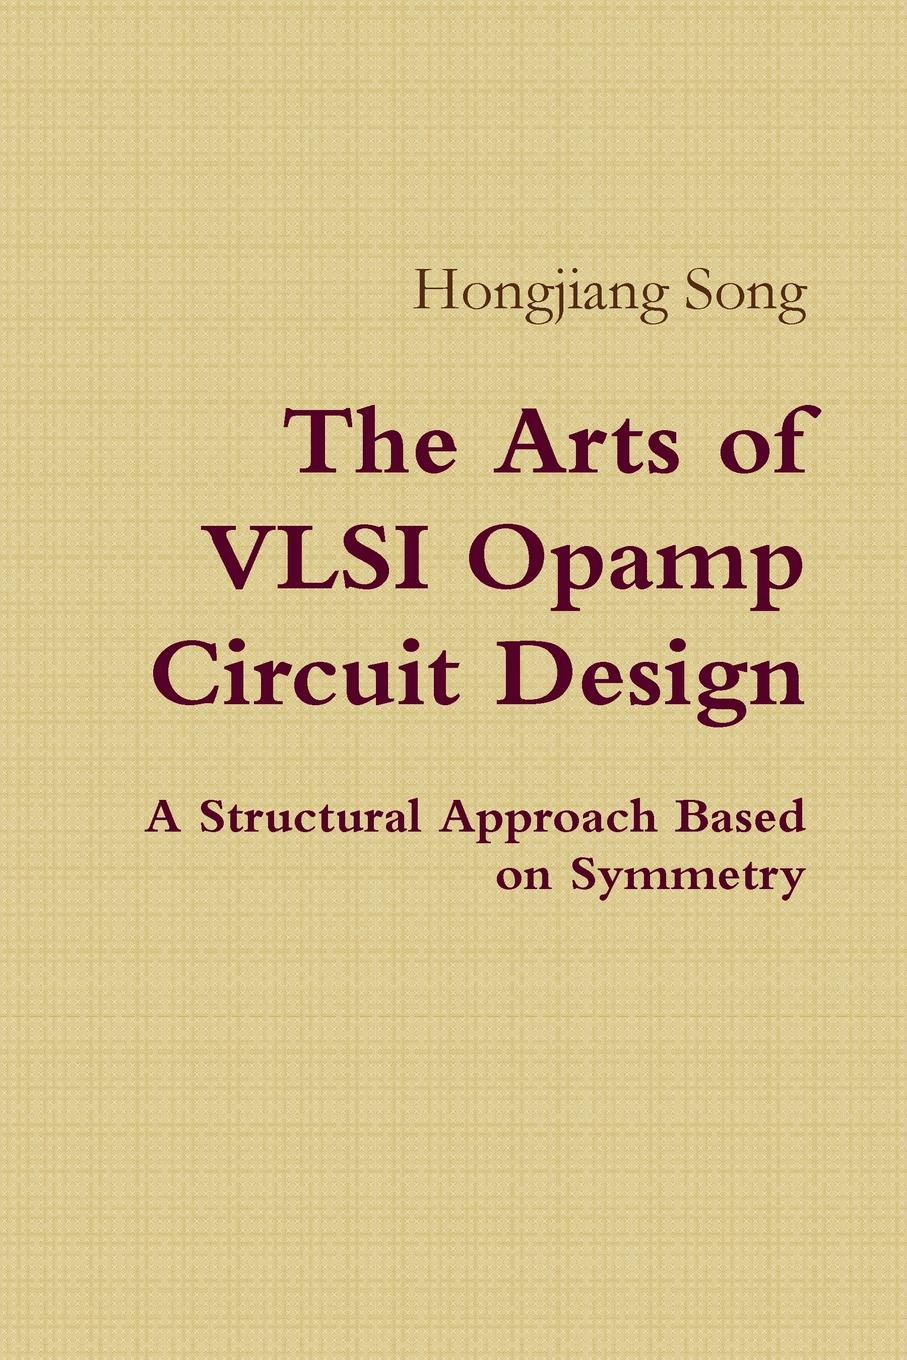 Hongjiang Song The Arts of VLSI Opamp Circuit Design - A Structural Approach Based on Symmetry цены